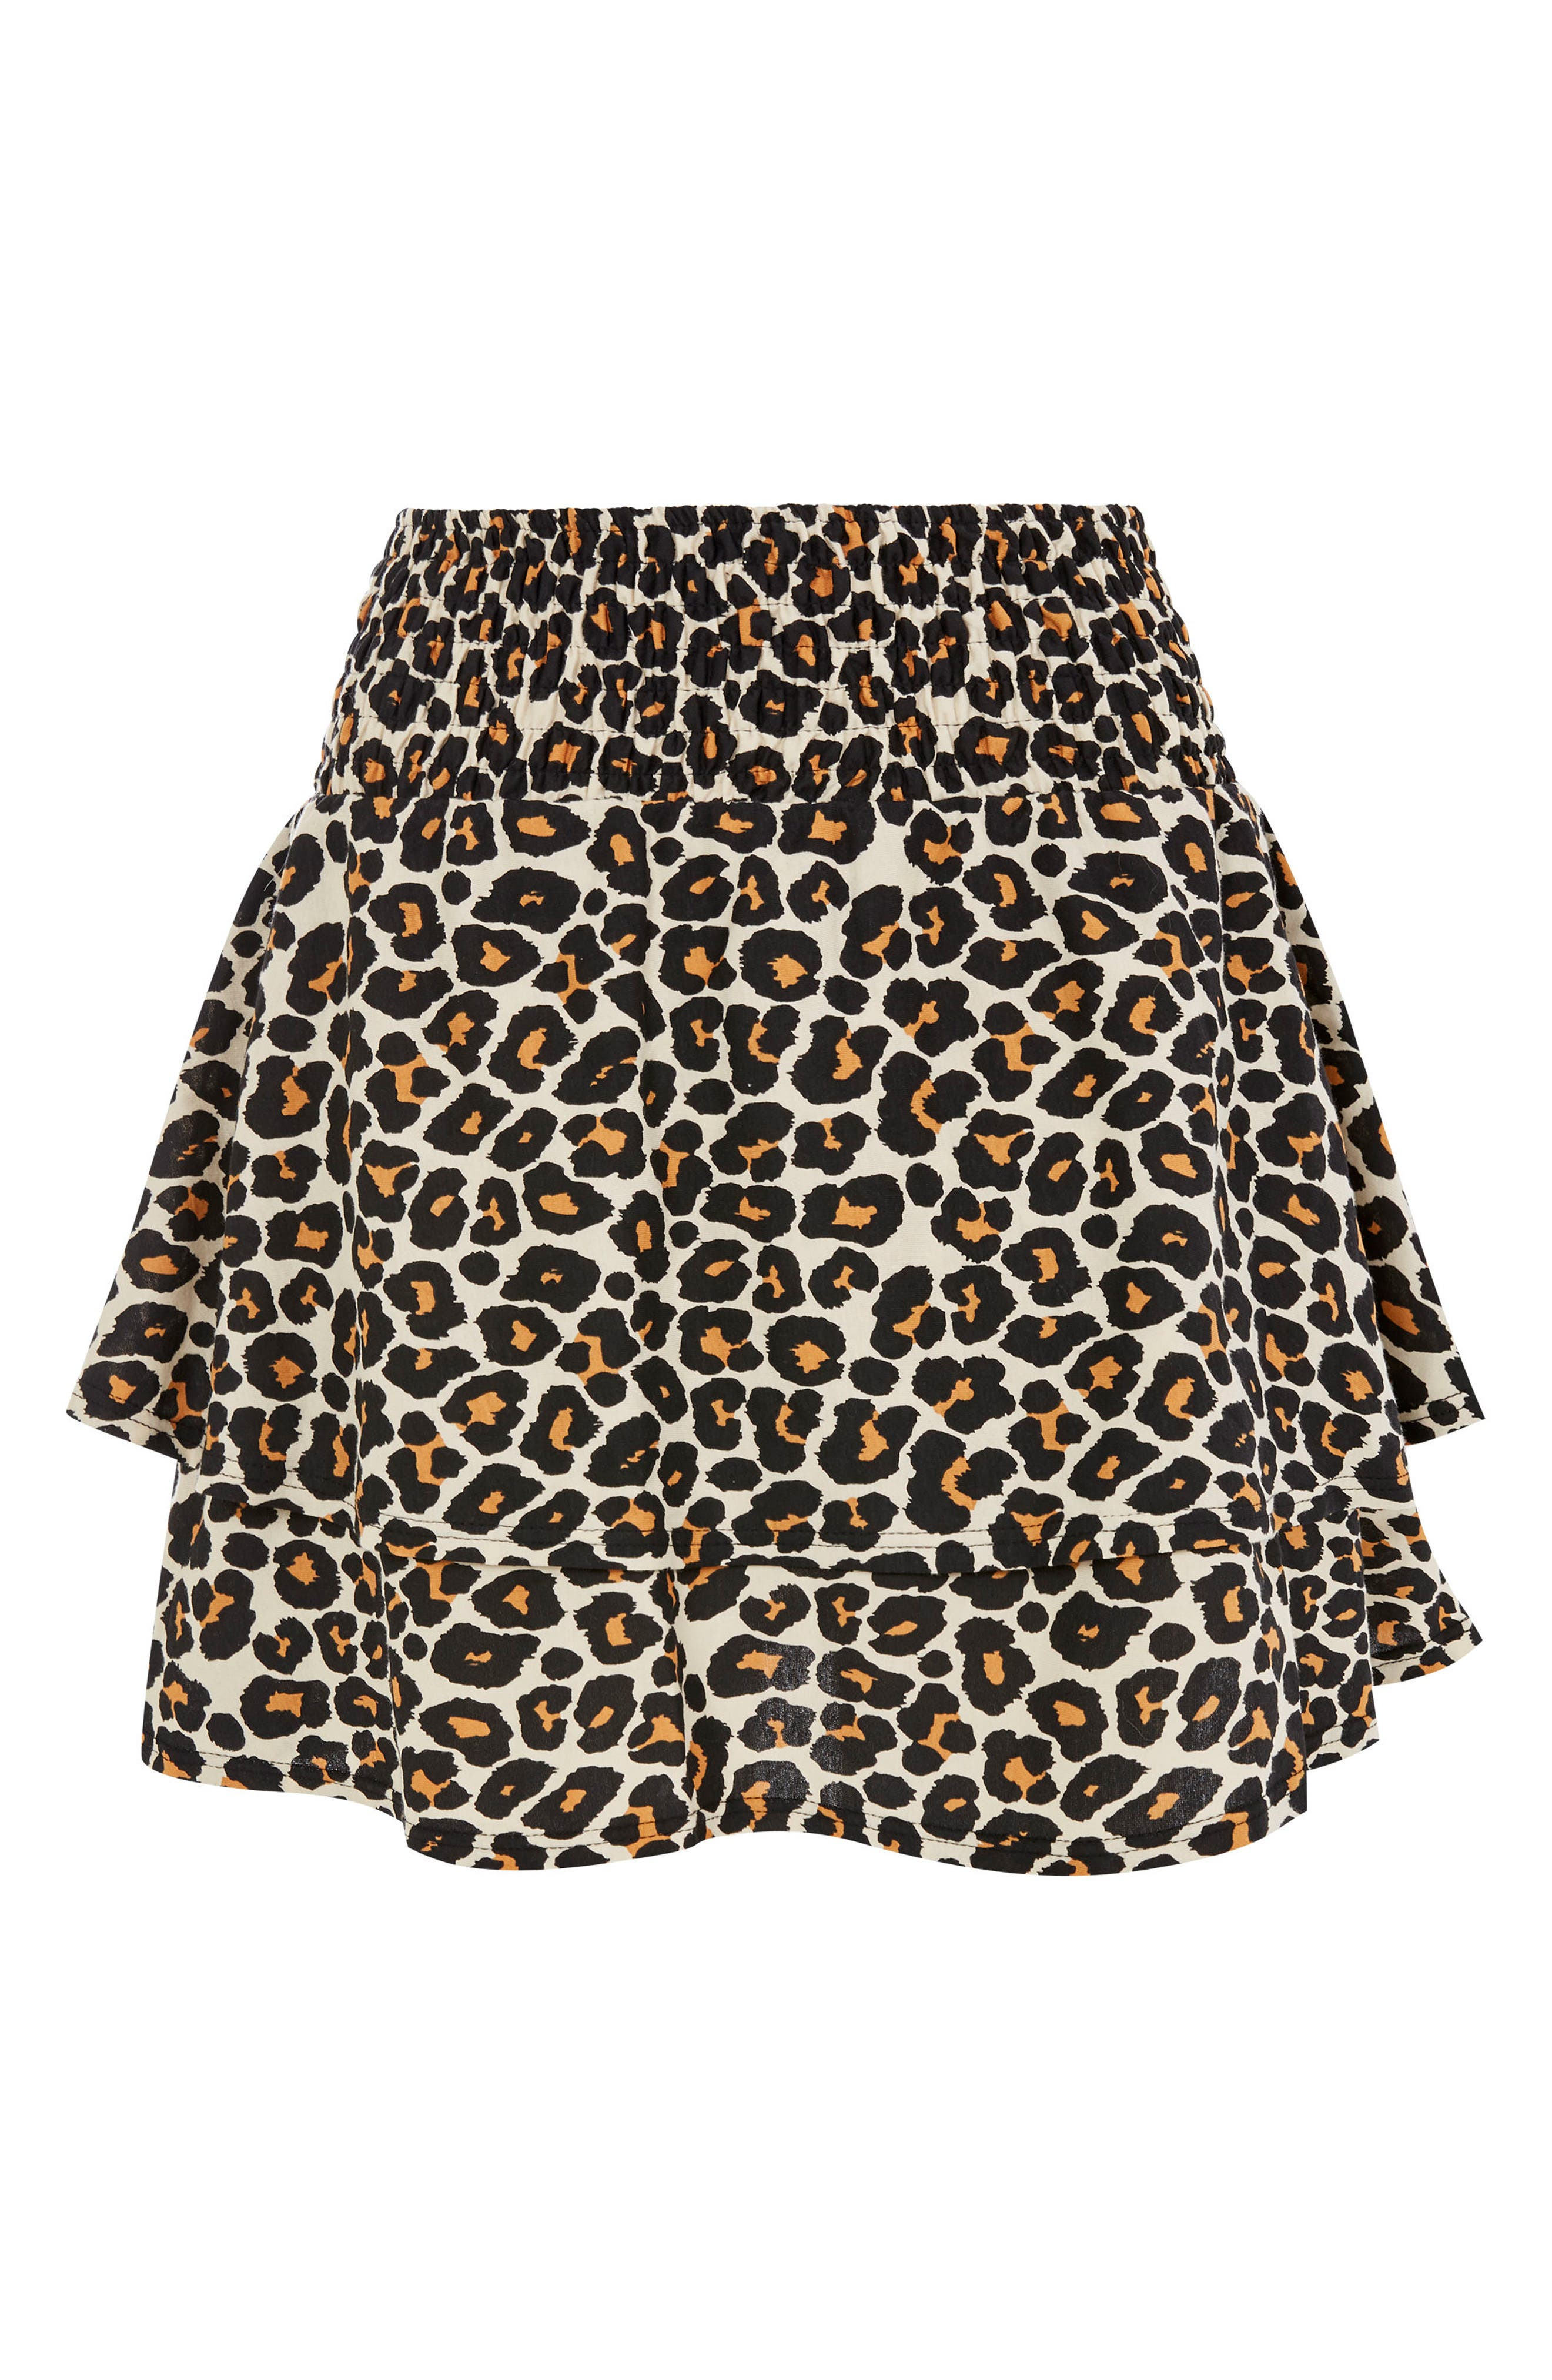 Tiered Leopard Skirt,                             Alternate thumbnail 3, color,